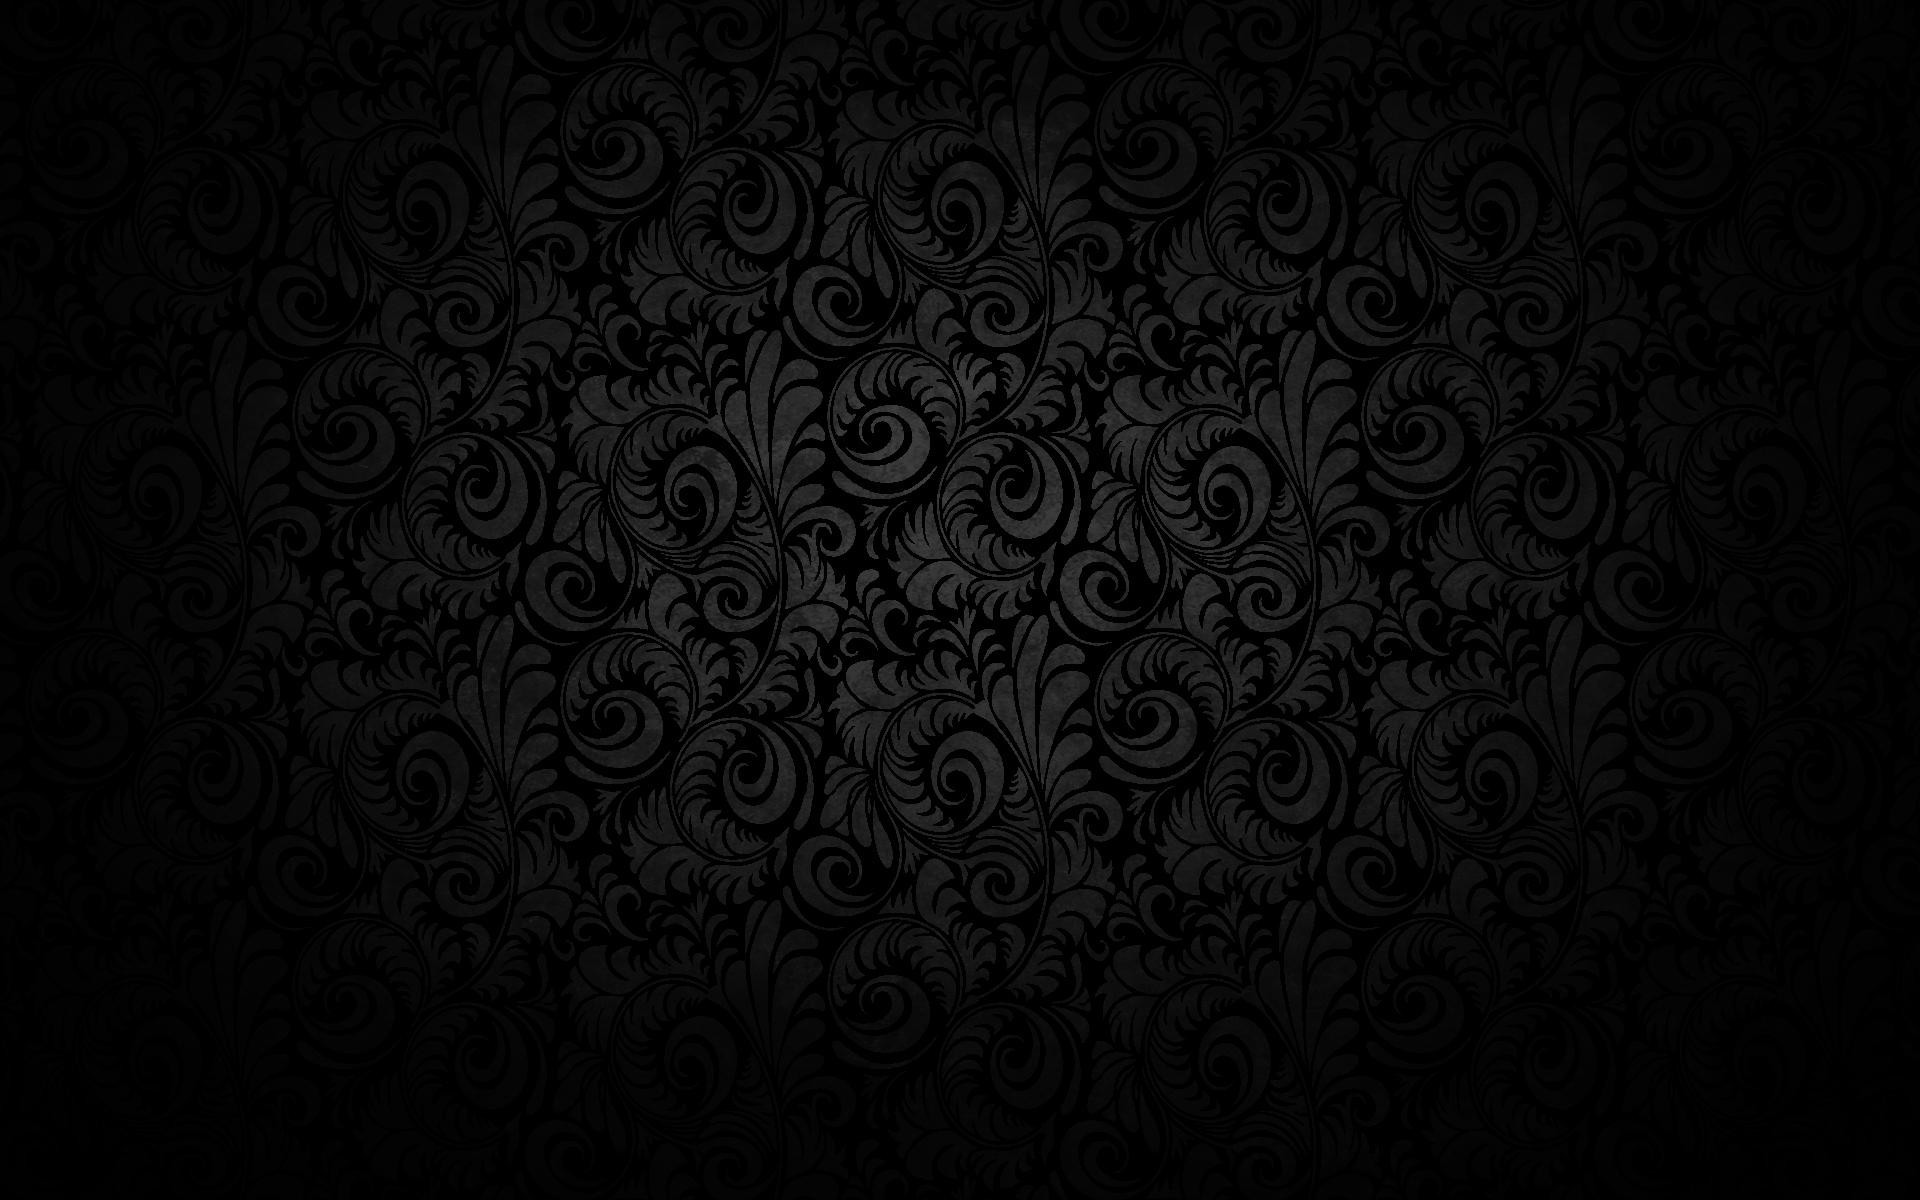 Hd 3d Gothic Wallpapers 67 Images